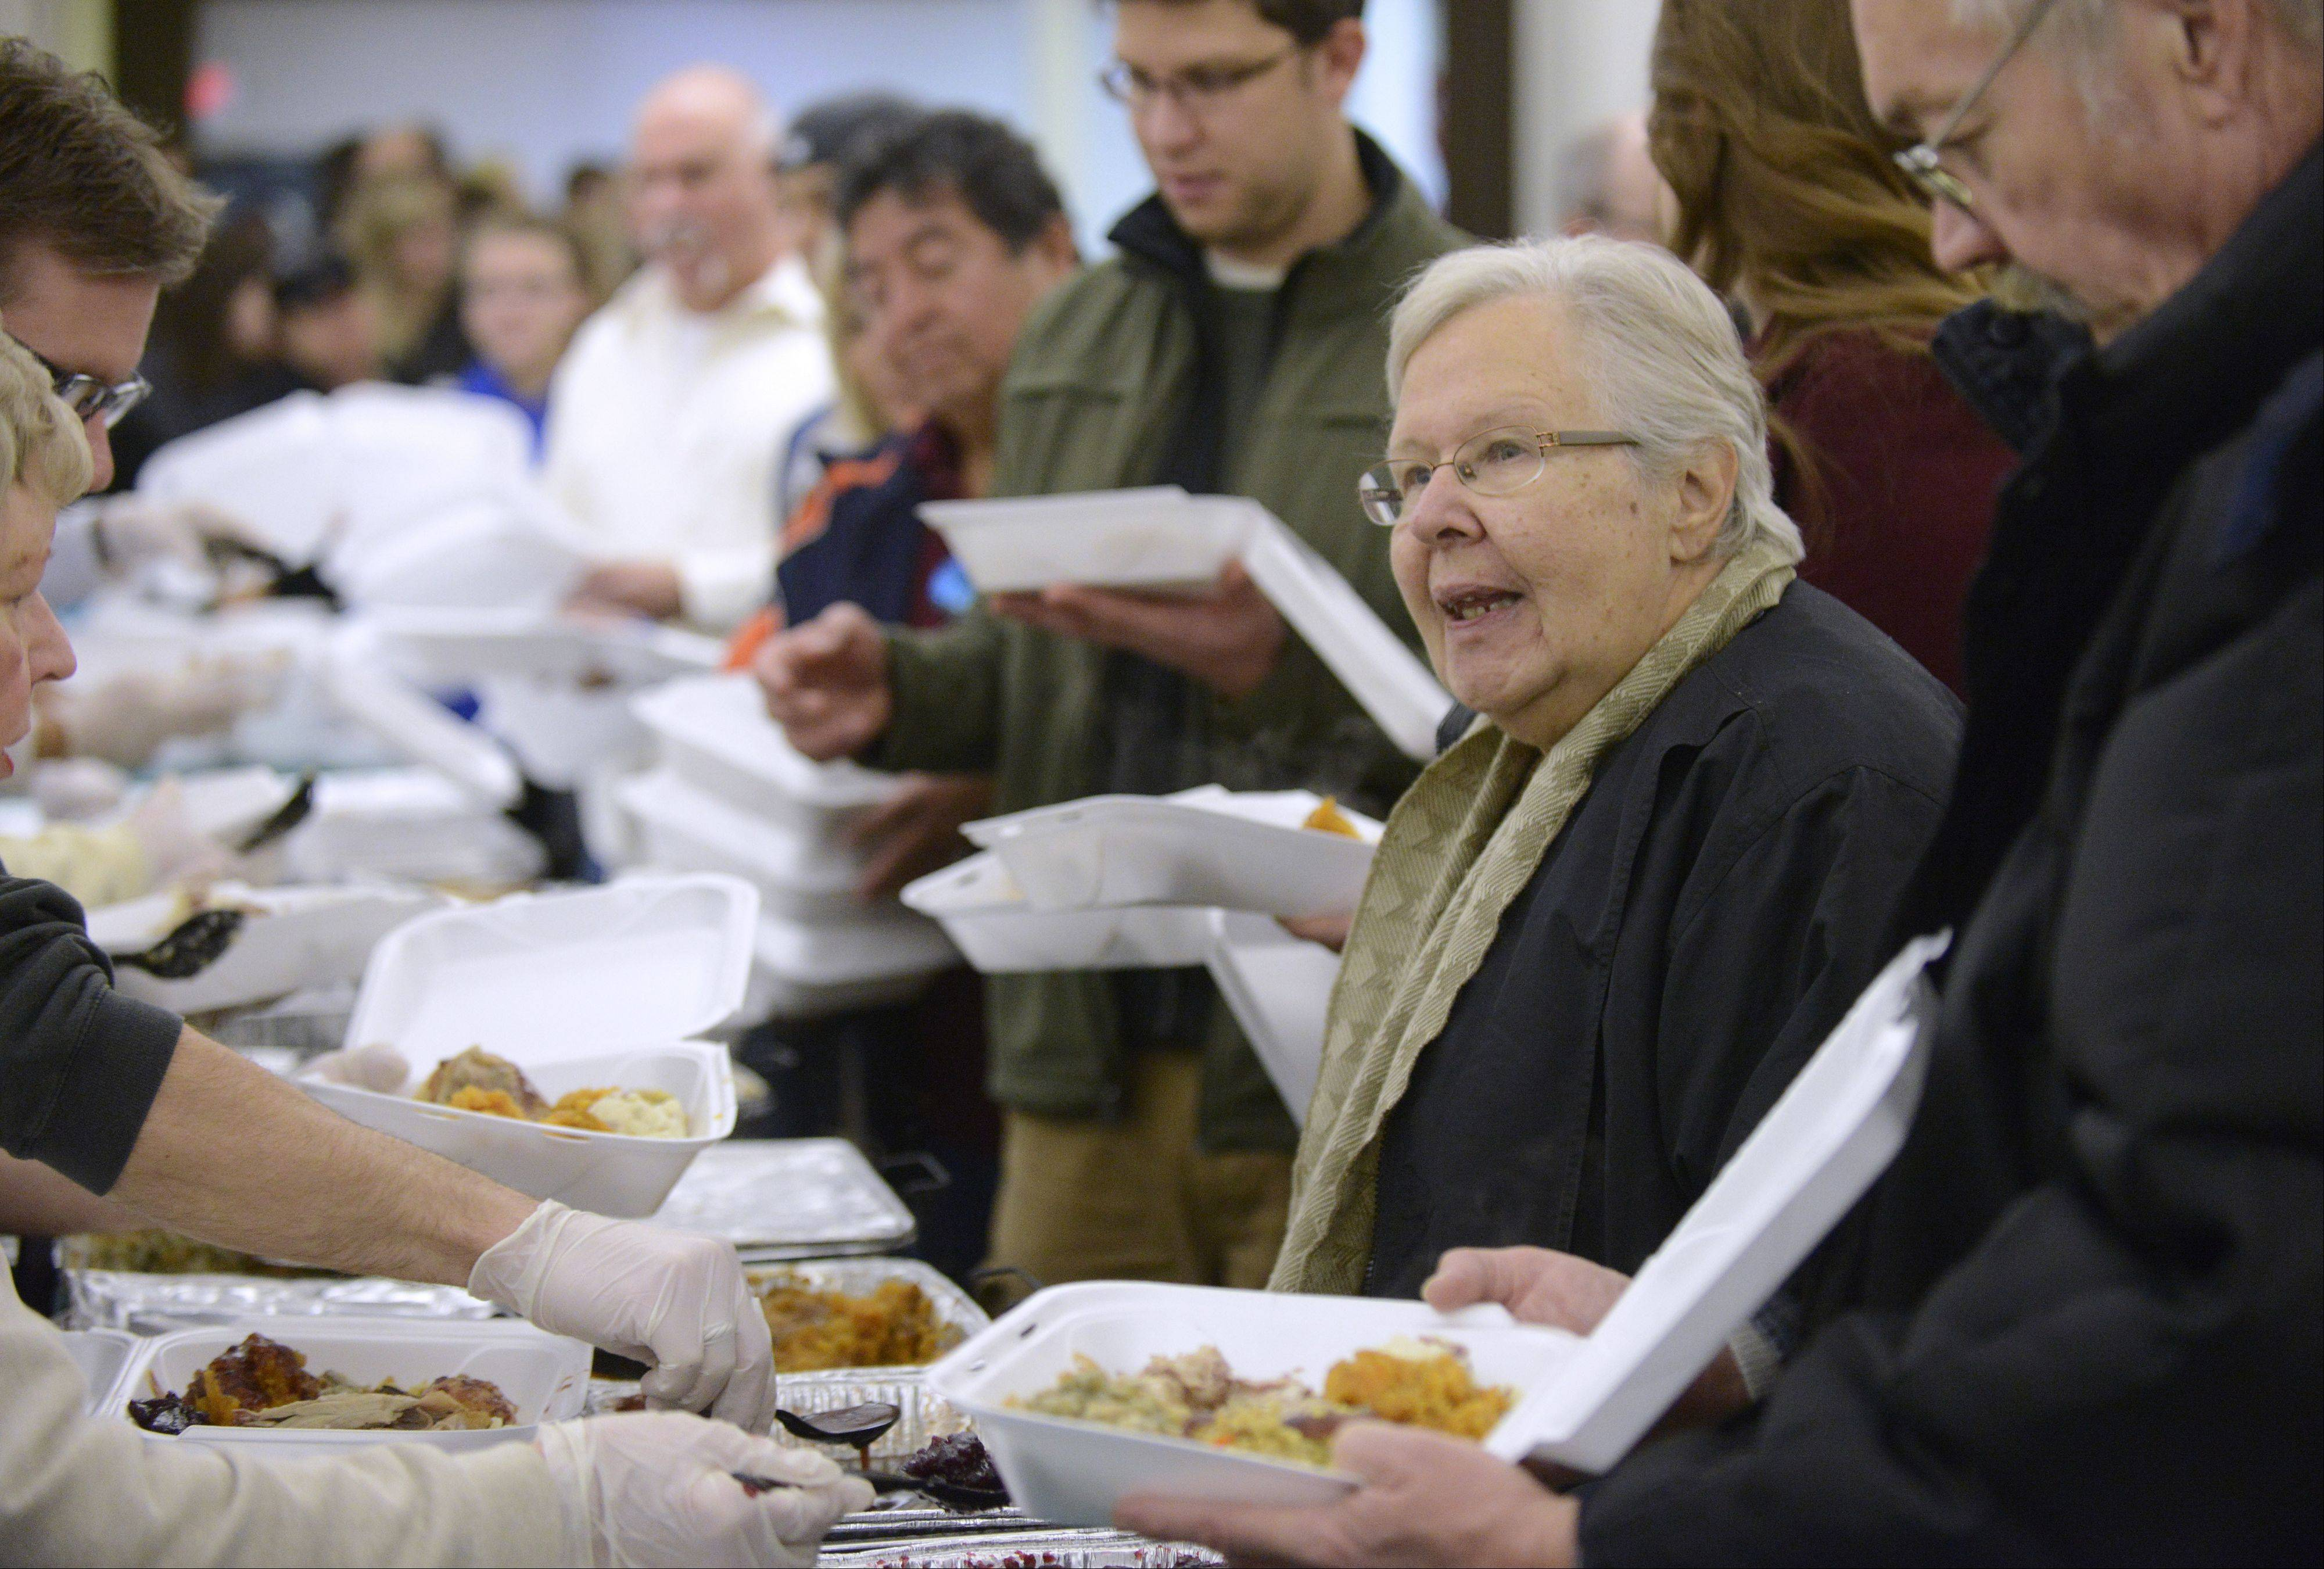 Barb Roderick of Elgin waits in line Thursday as seven turkey dinners are packaged for her at the Elgin Community Thanksgiving Dinner at the First United Methodist Church. Roderick collected names from residents in her building at Burnham Manor (as well as a neighbor who lives down her block) who wanted a hot meal on the holiday and delivered directly to them. Every month she does something to give back to the community and this was her November pick. She even enlisted the help of her neighbor, Larry Funk, right, to help her deliver the meals.